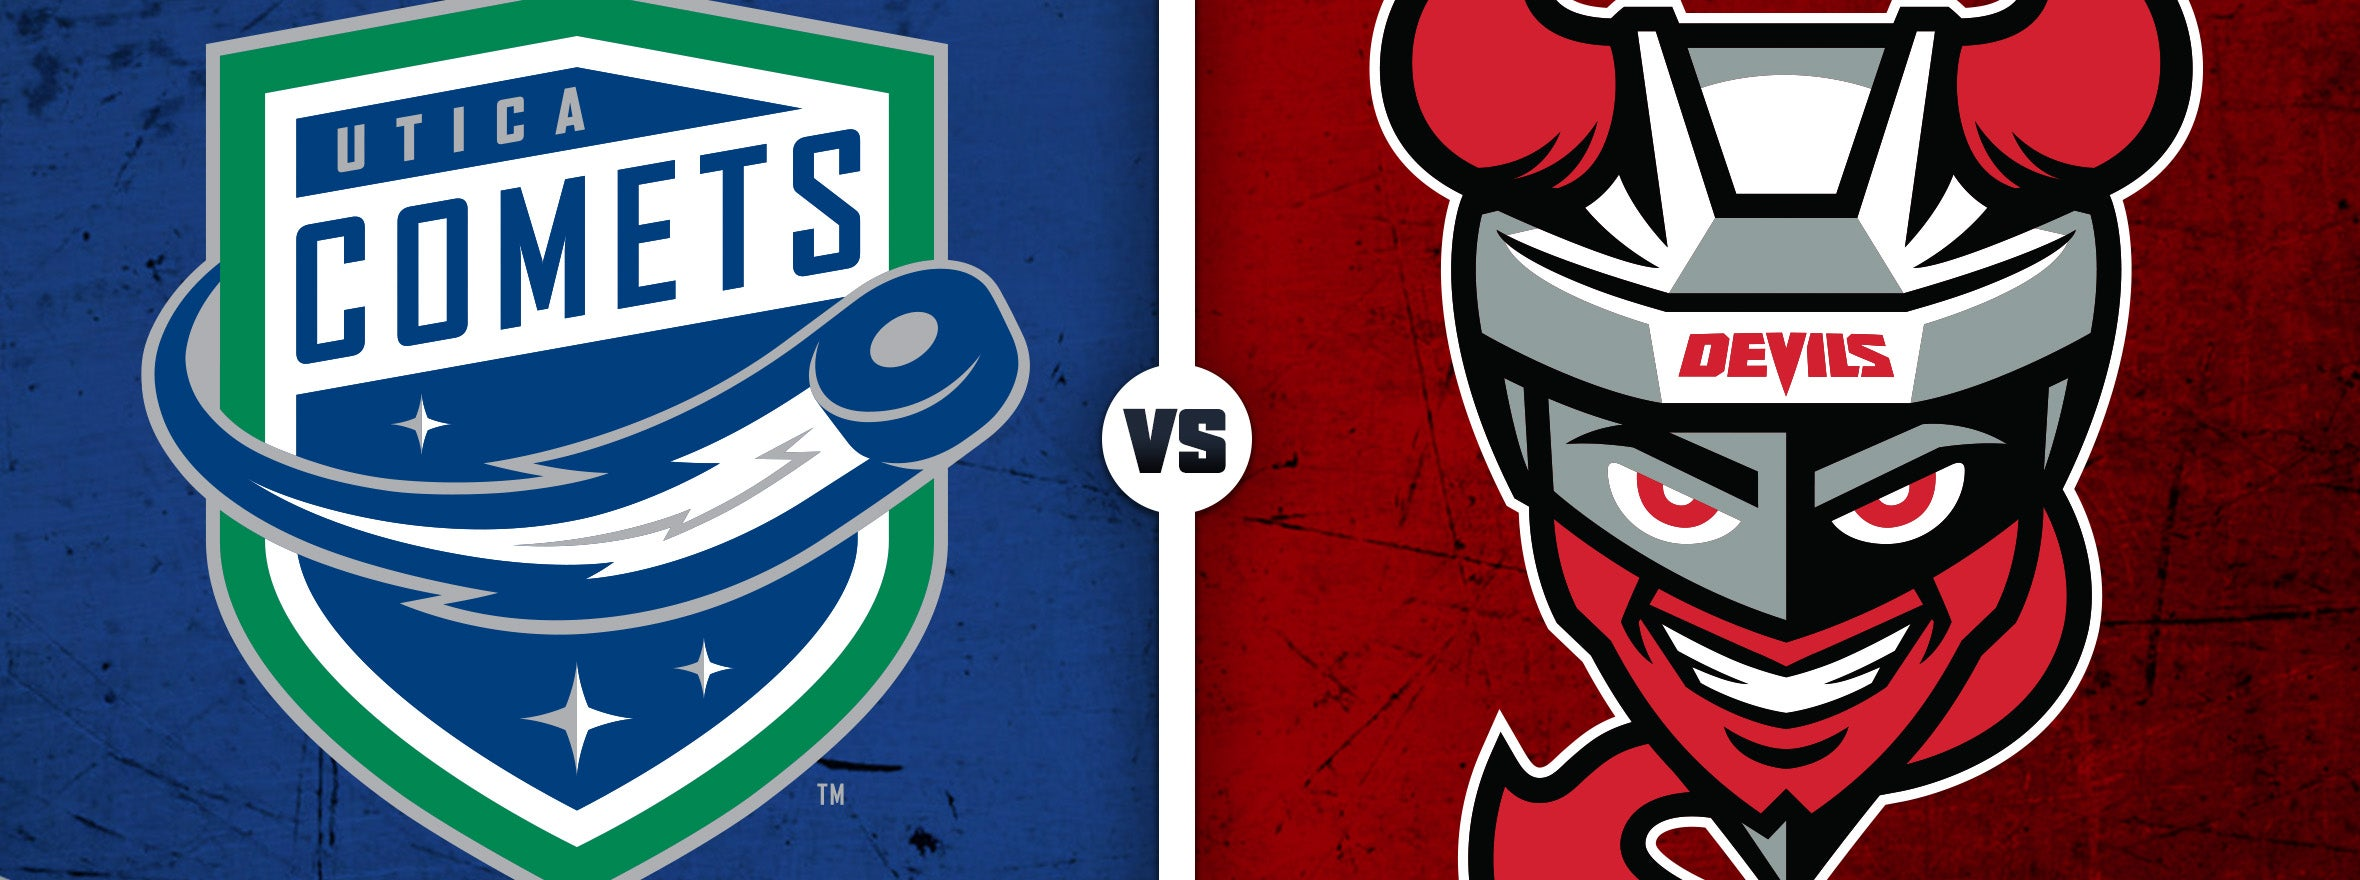 COMETS SET FOR SATURDAY MEETING WITH BINGHAMTON DEVILS